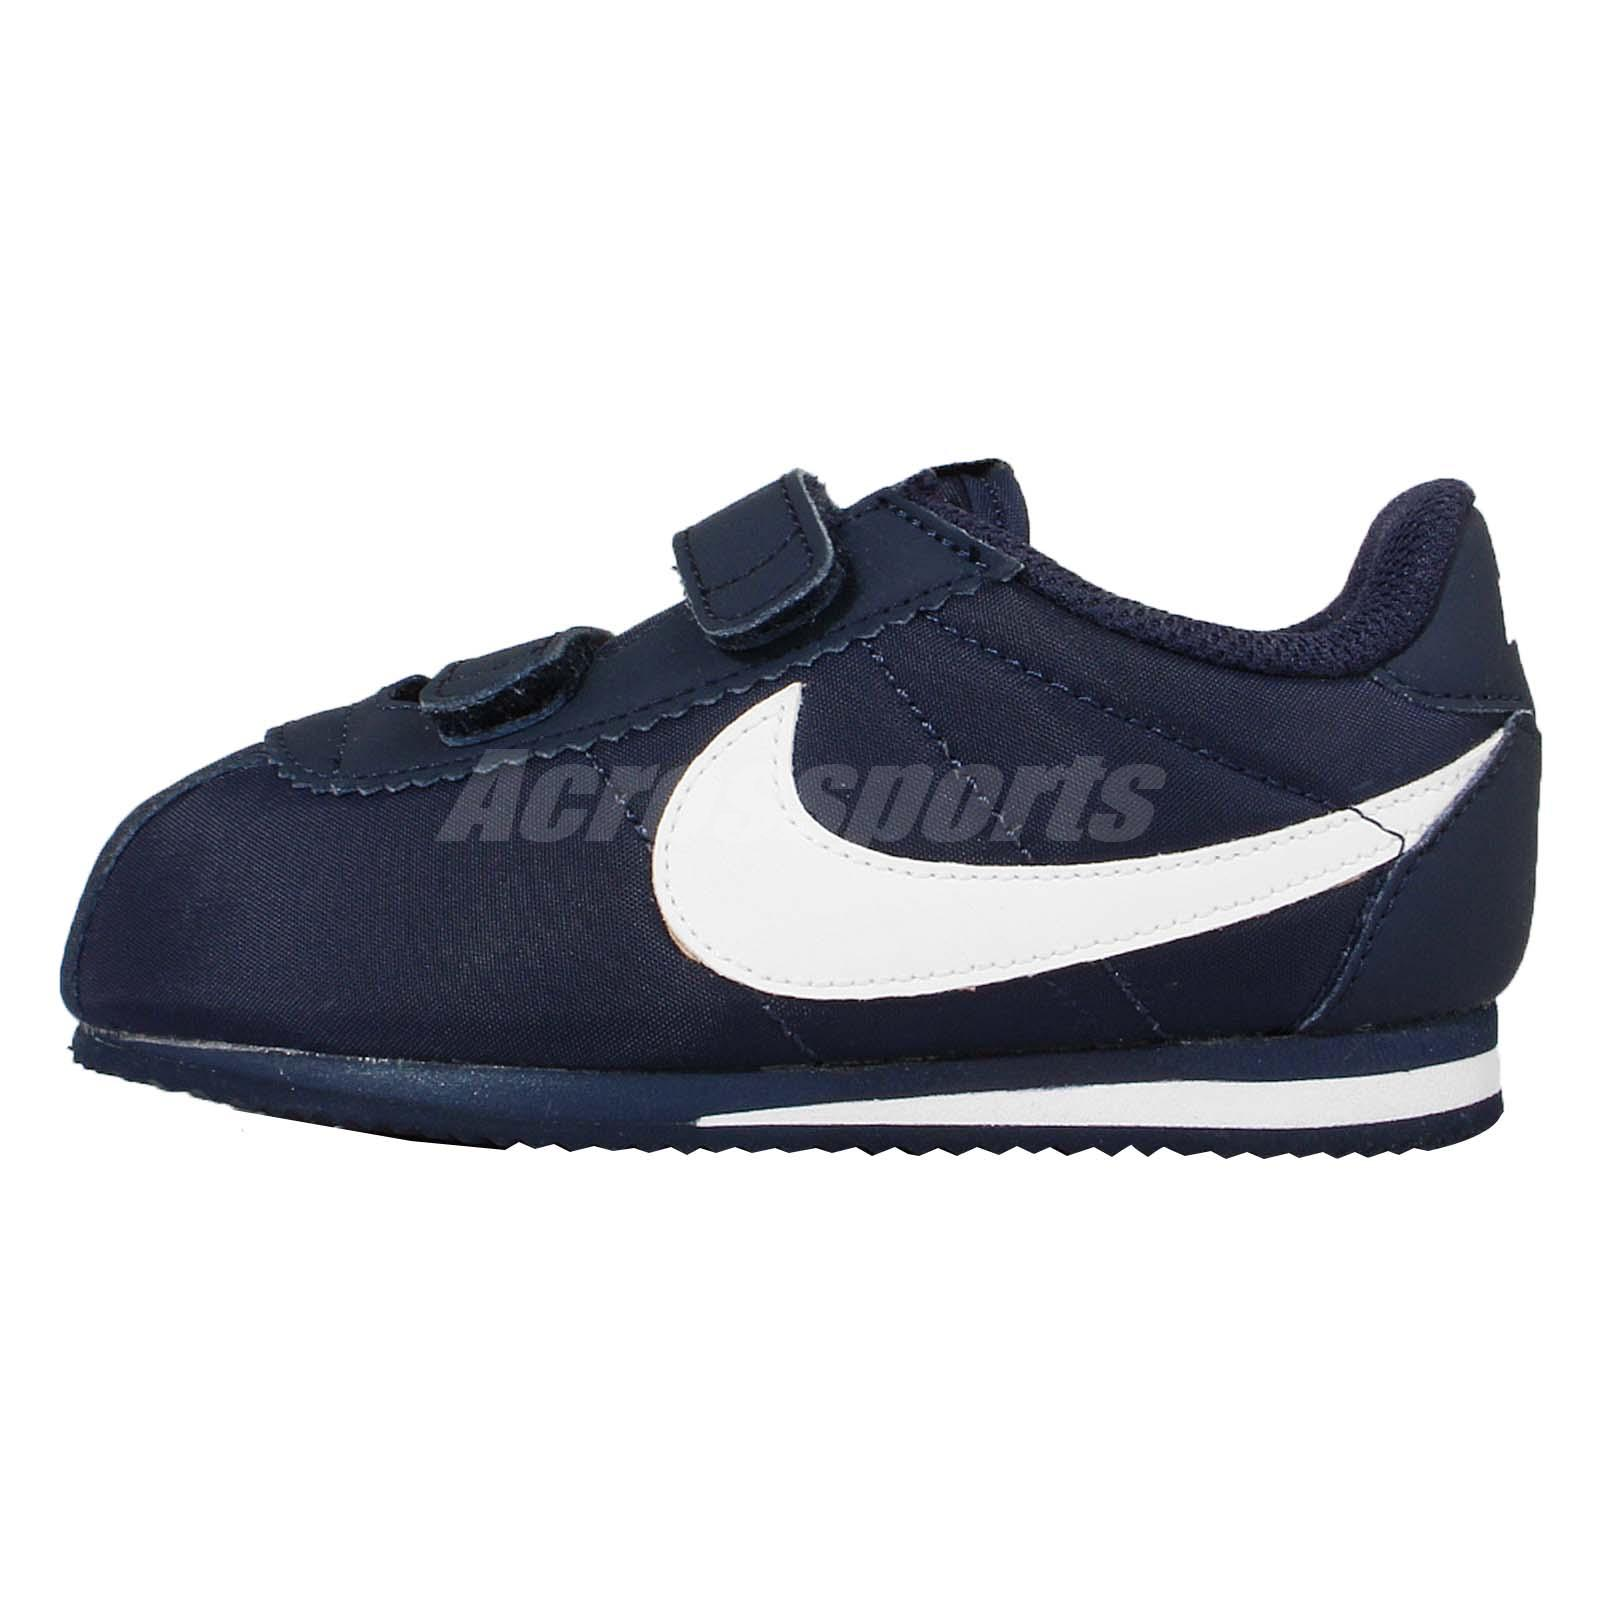 nike cortez basic mr cartoon edition price